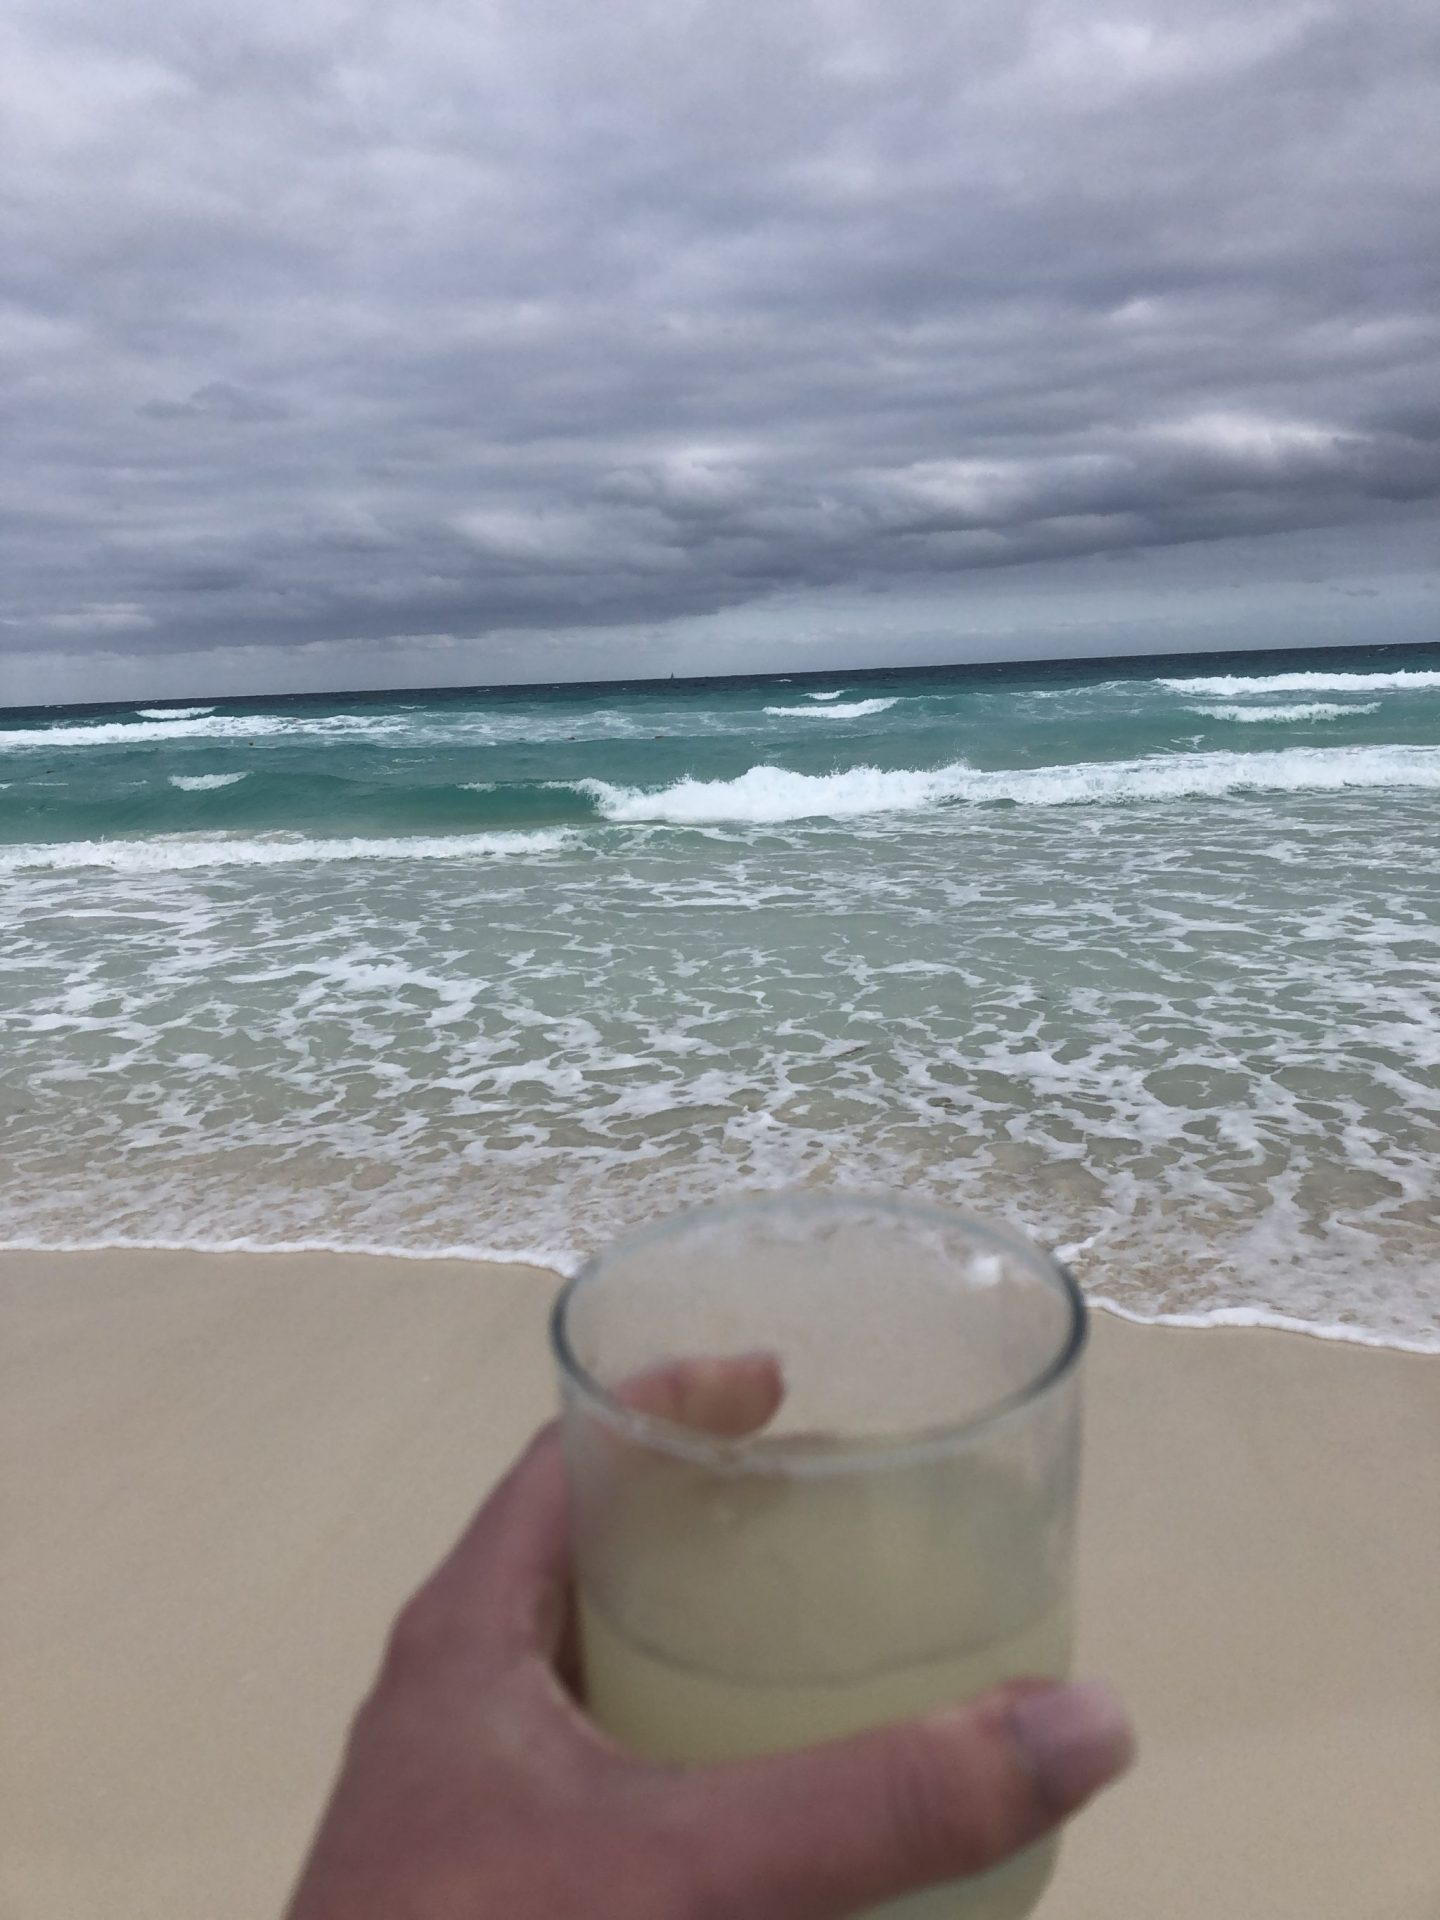 Margarita on the beach, Cancun